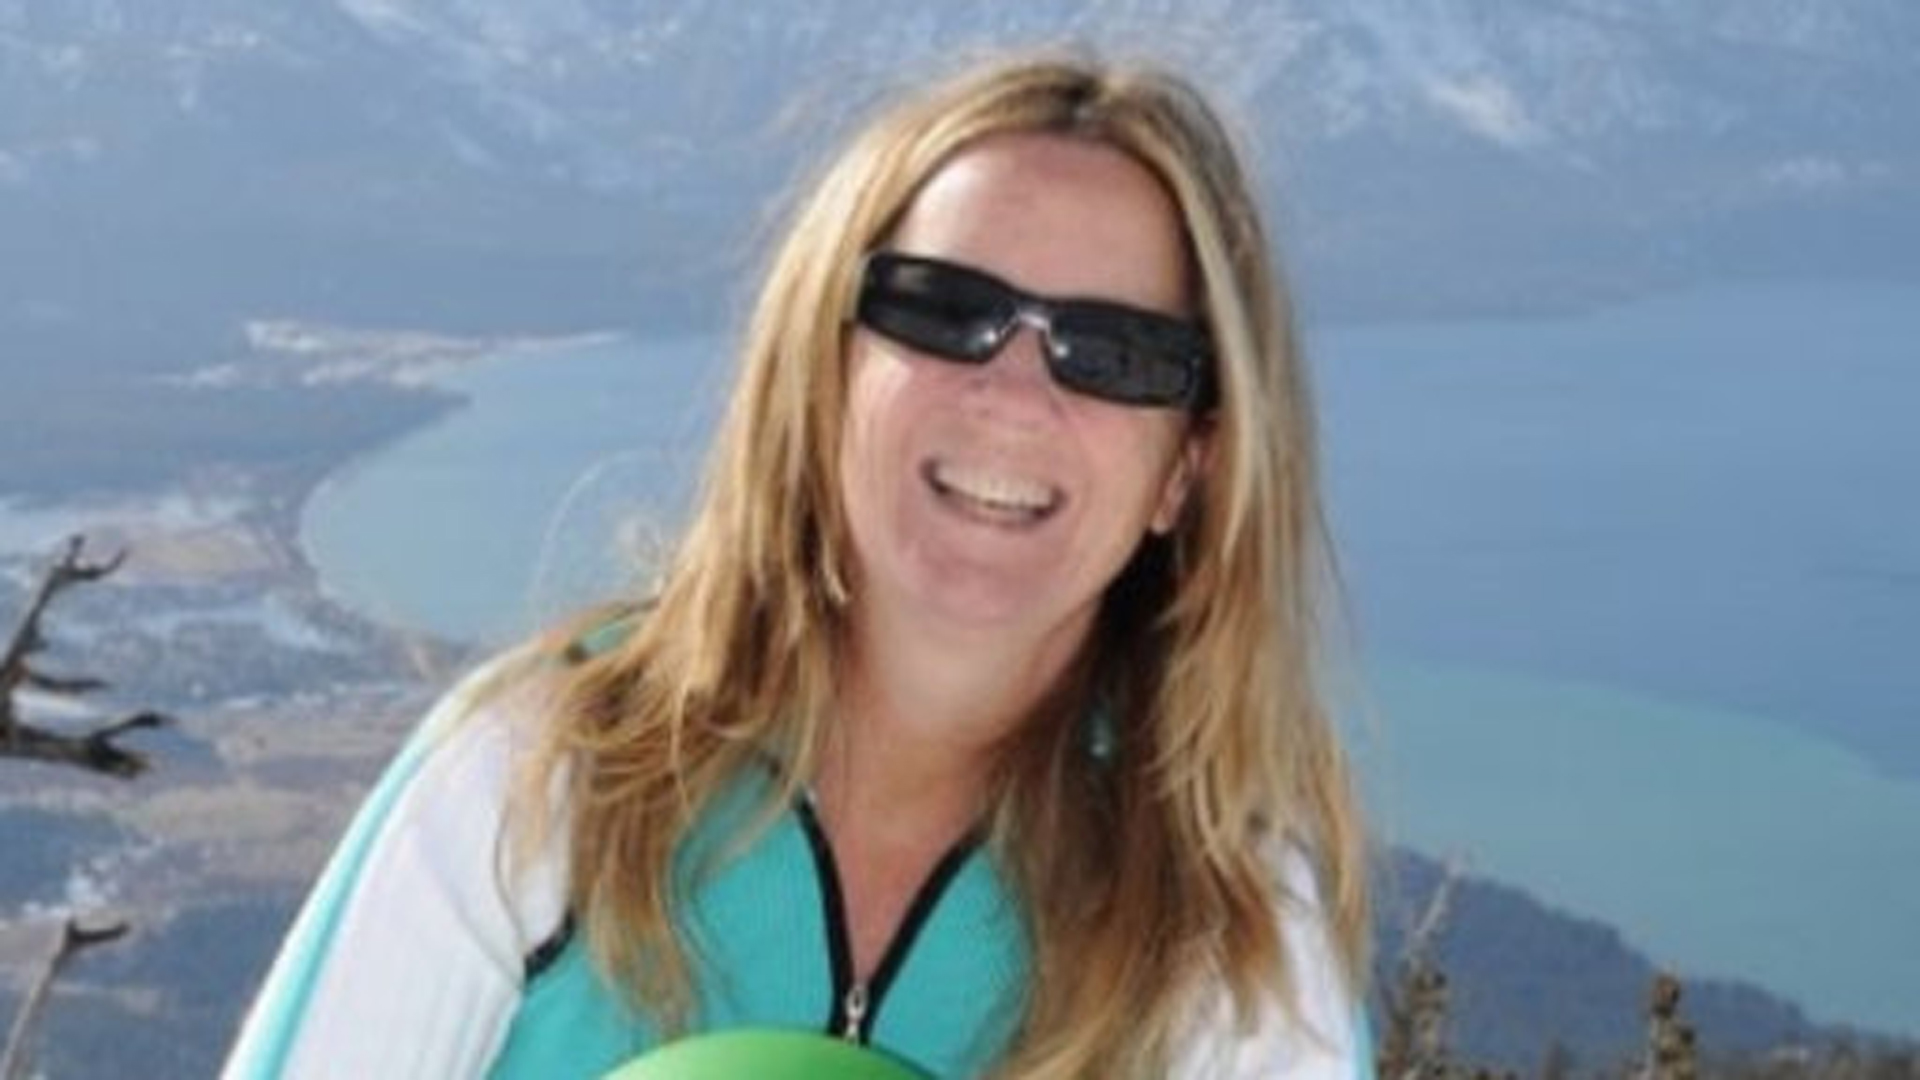 Christine Blasey Ford is shown in a photo posted by Researchgate.net and distributed by CNN Wire.